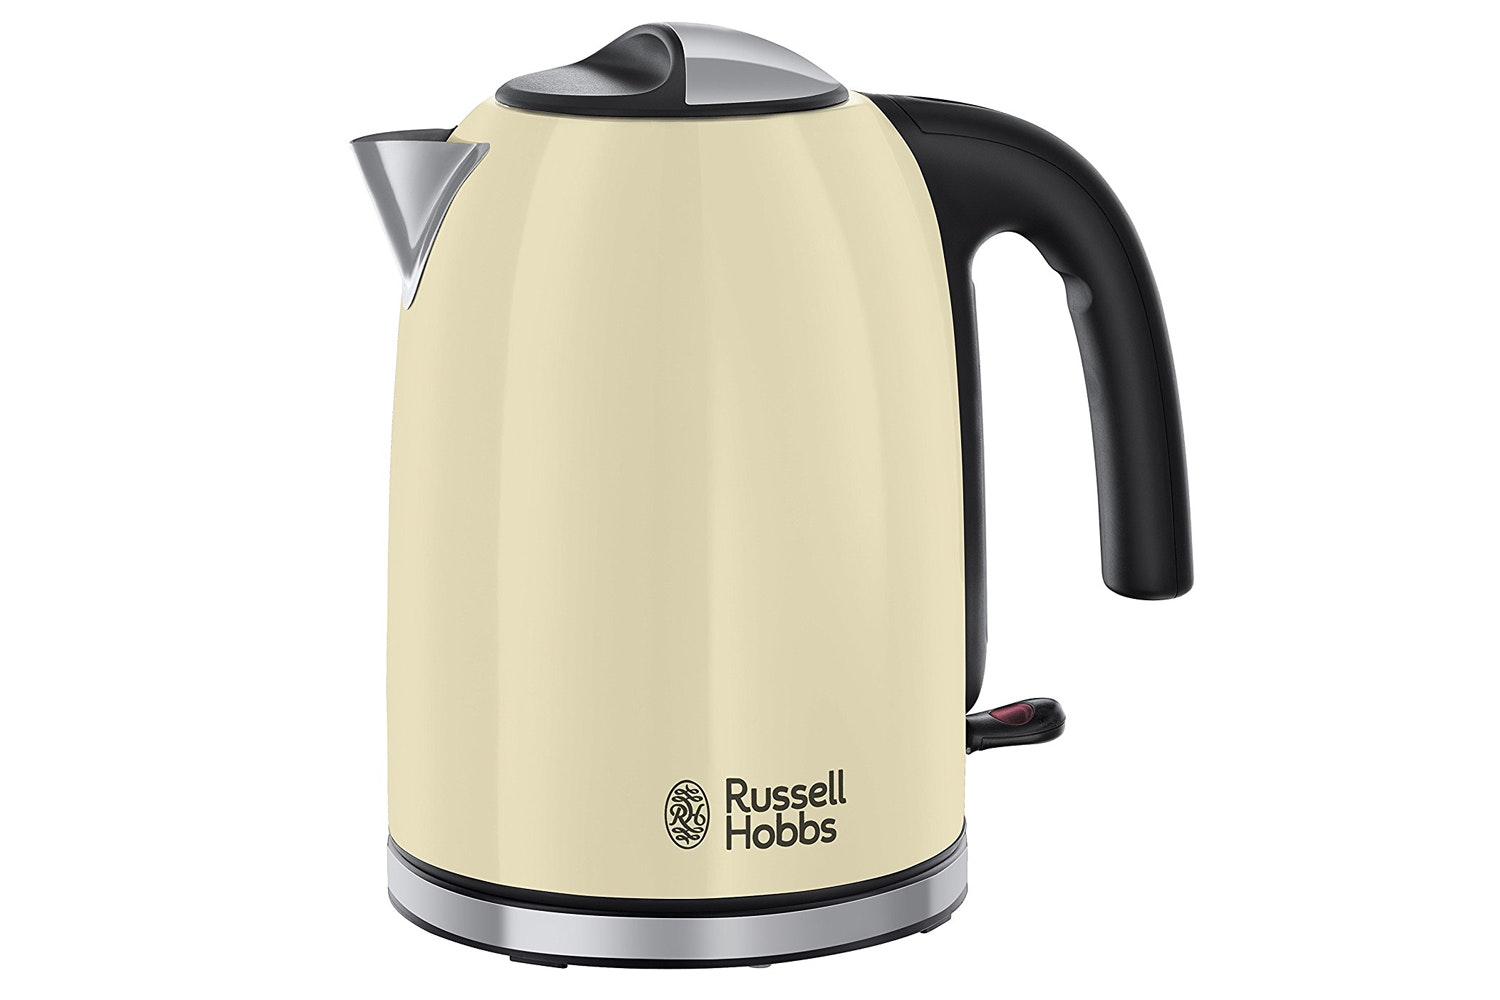 Russell Hobbs 1.7L Colours Plus Kettle | Cream